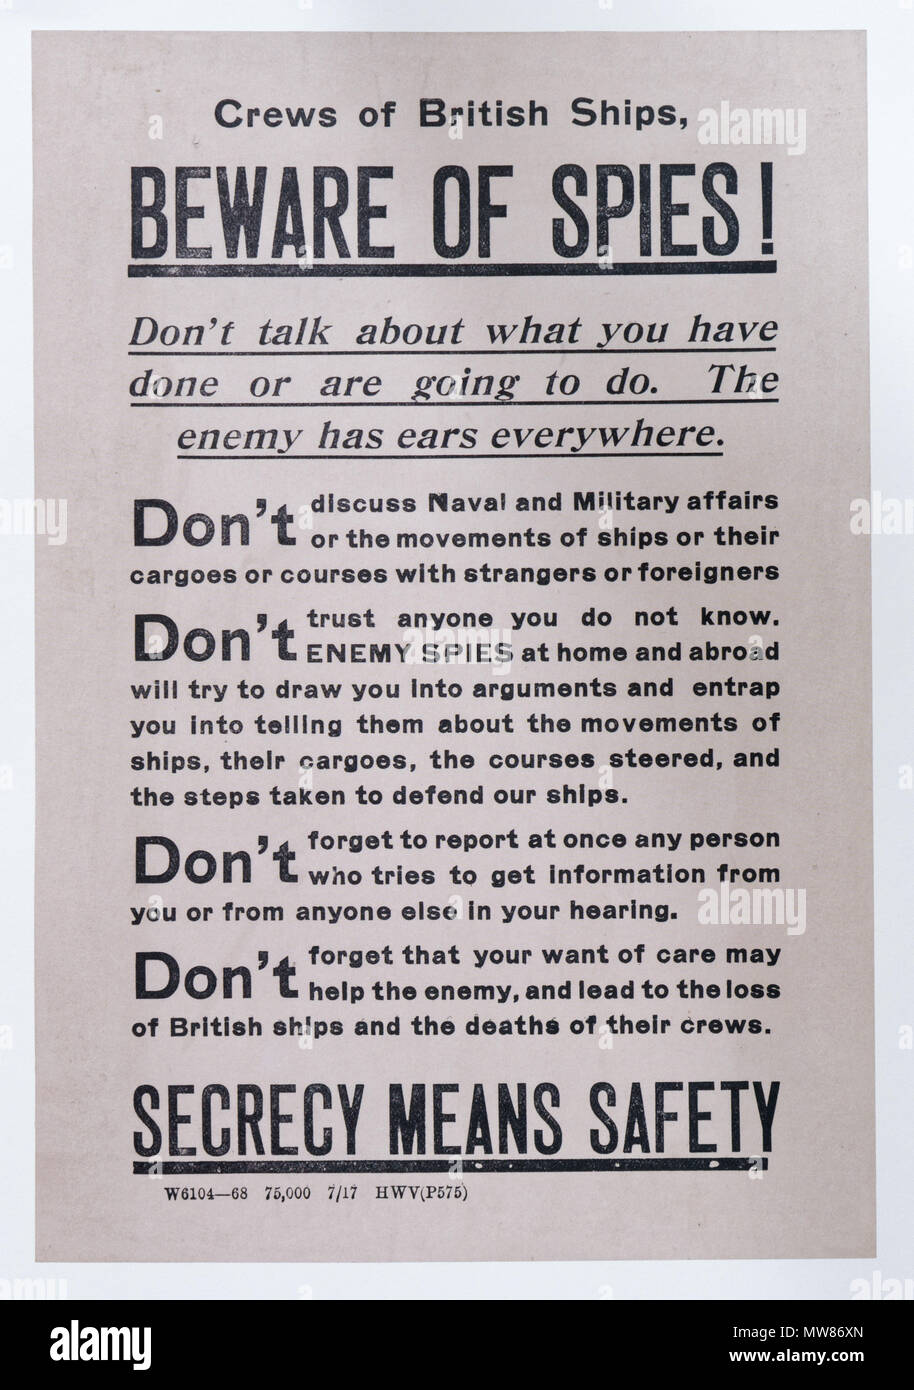 A British first world war poster cautioning crews of ships to beware of spies - Stock Image